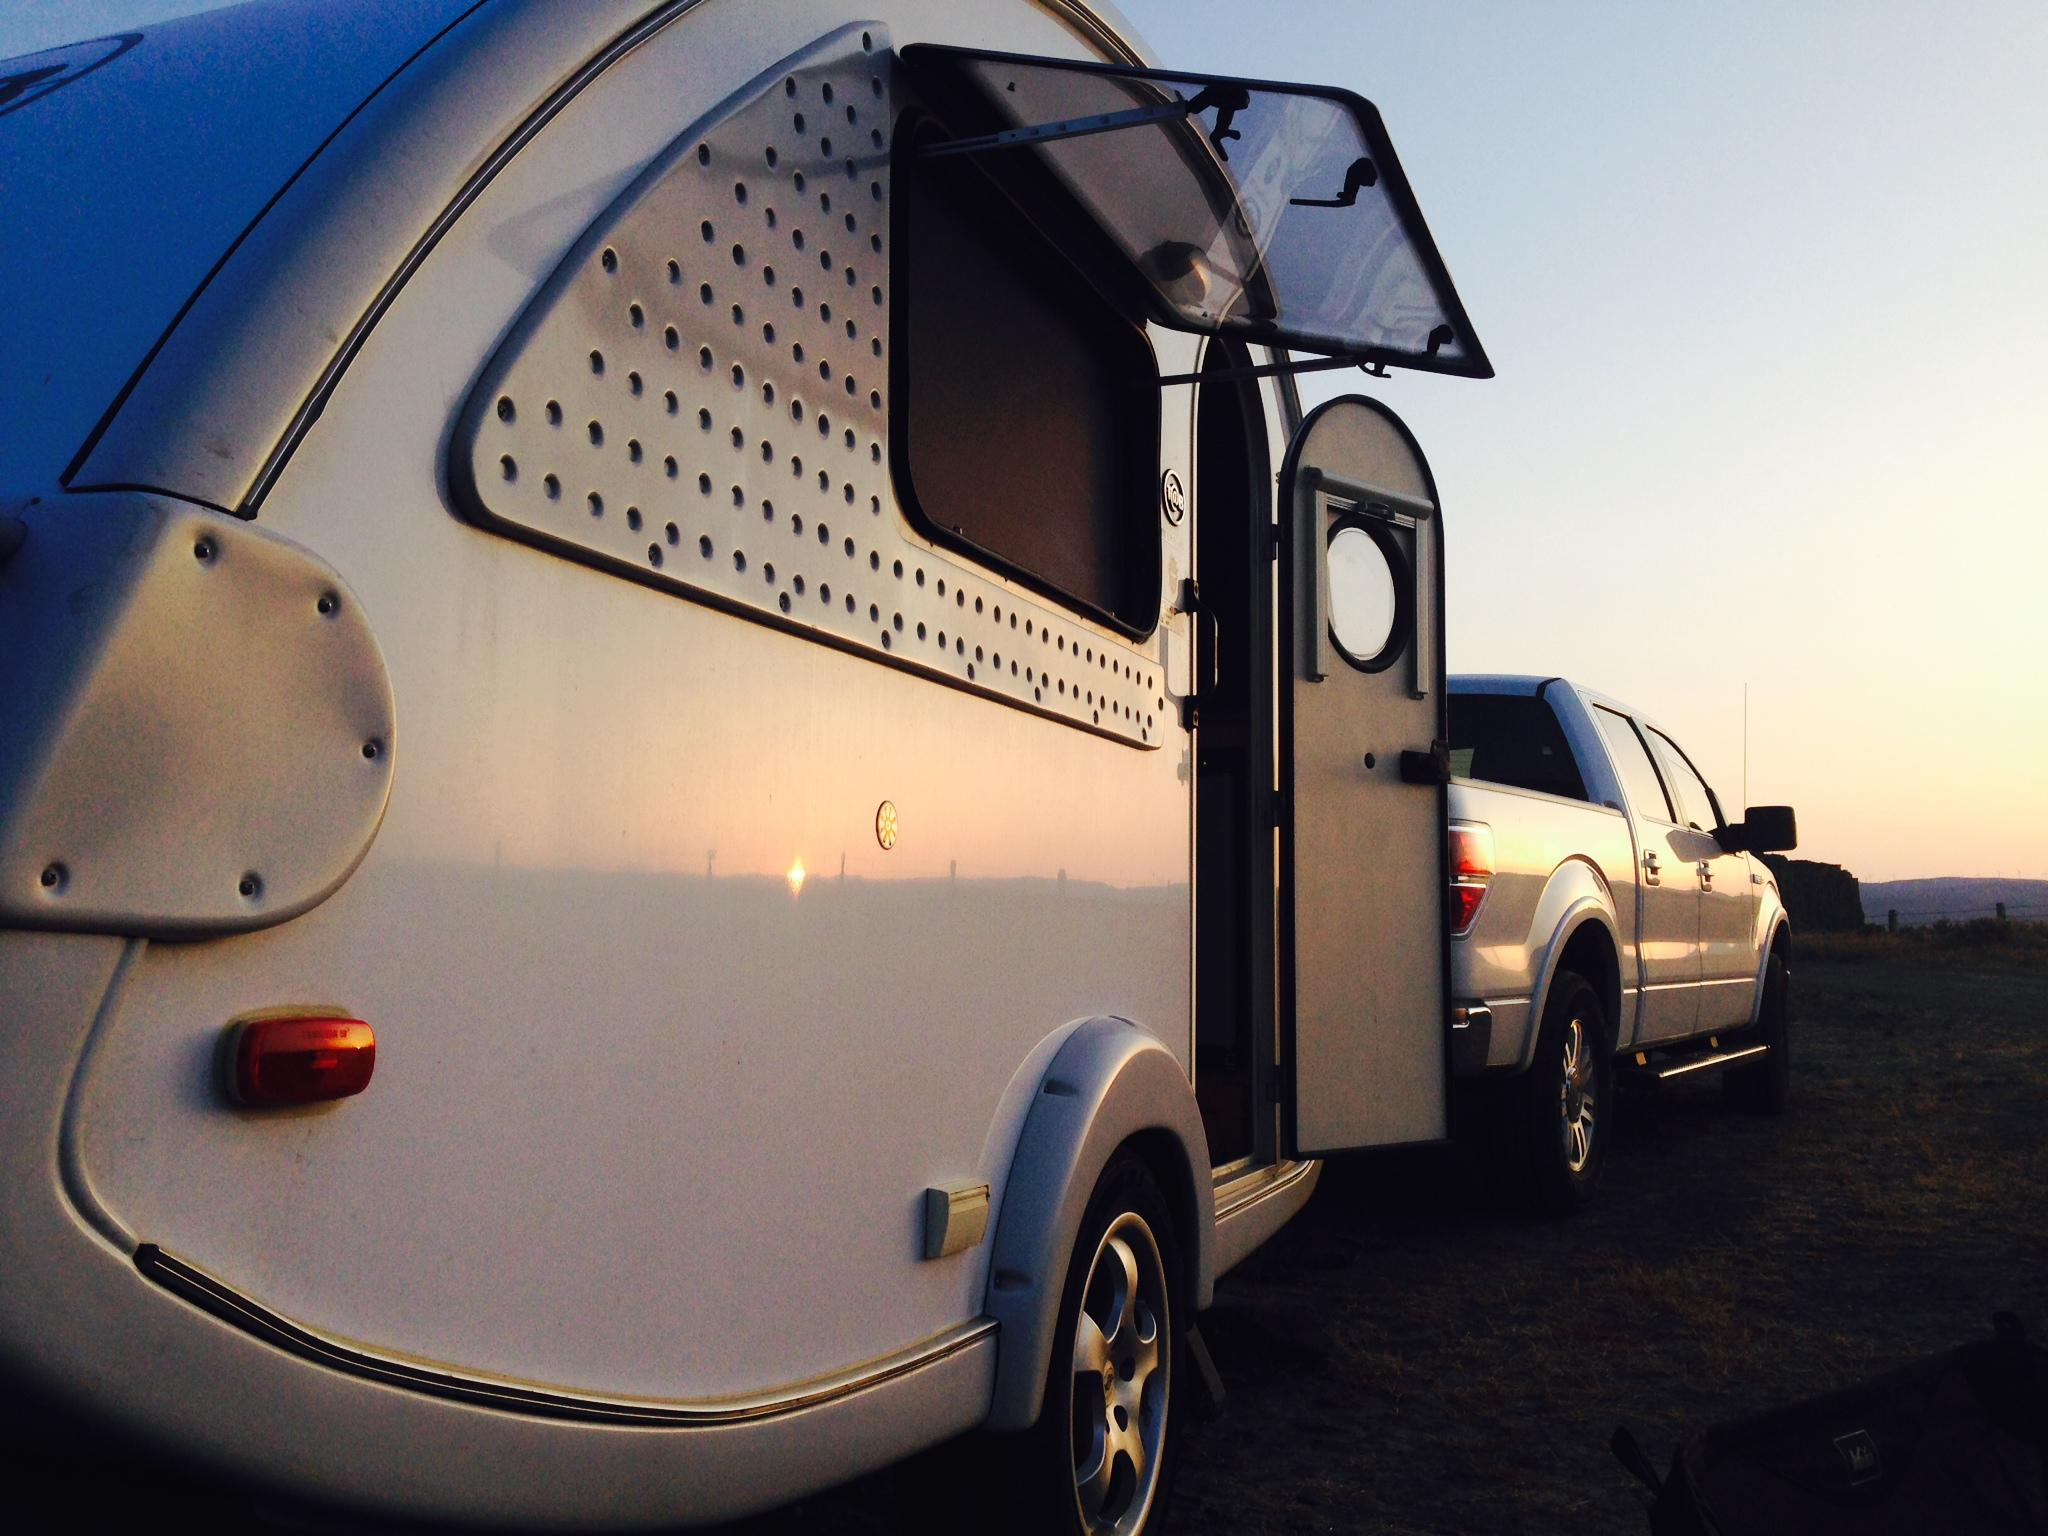 Traveling by teardrop allows you to enjoy outdoor adventure without having to sacrifice comfort.